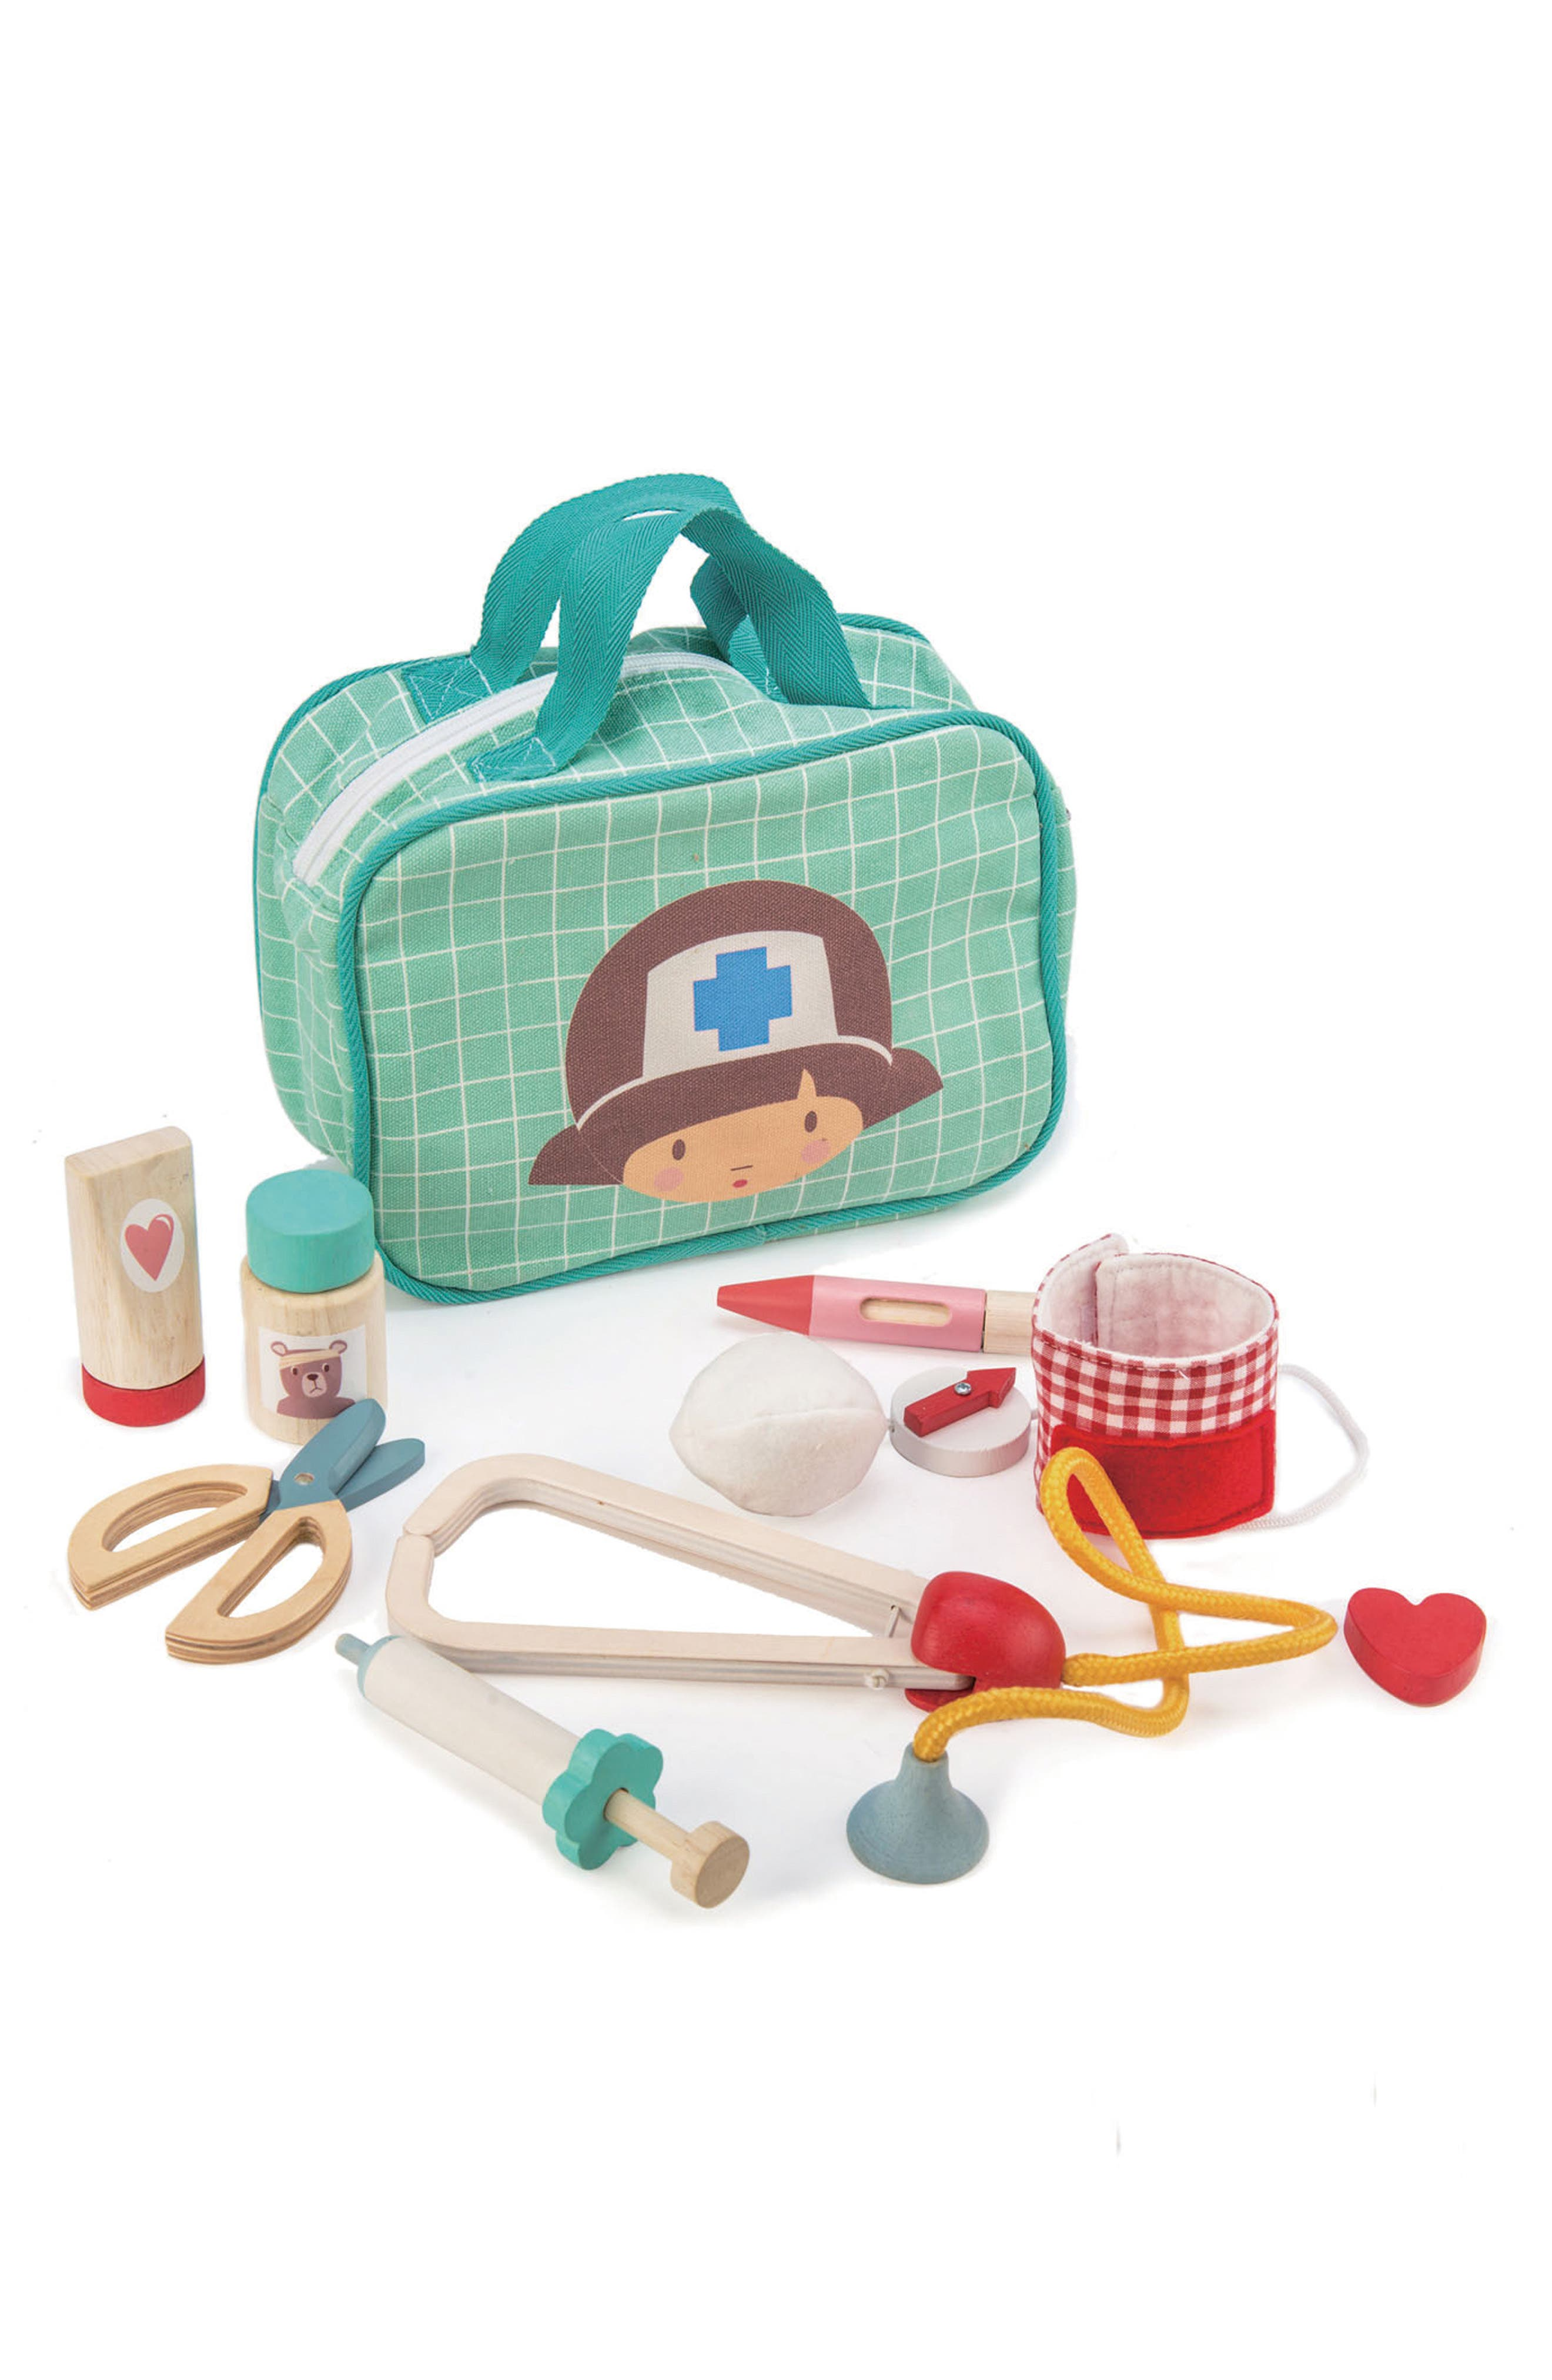 Aspiring medical professionals are sure to love practicing with this cheery set that includes a tote bag to keep everything together. Style Name: Tender Leaf Toys Medical Toy Set. Style Number: 5940638. Available in stores.